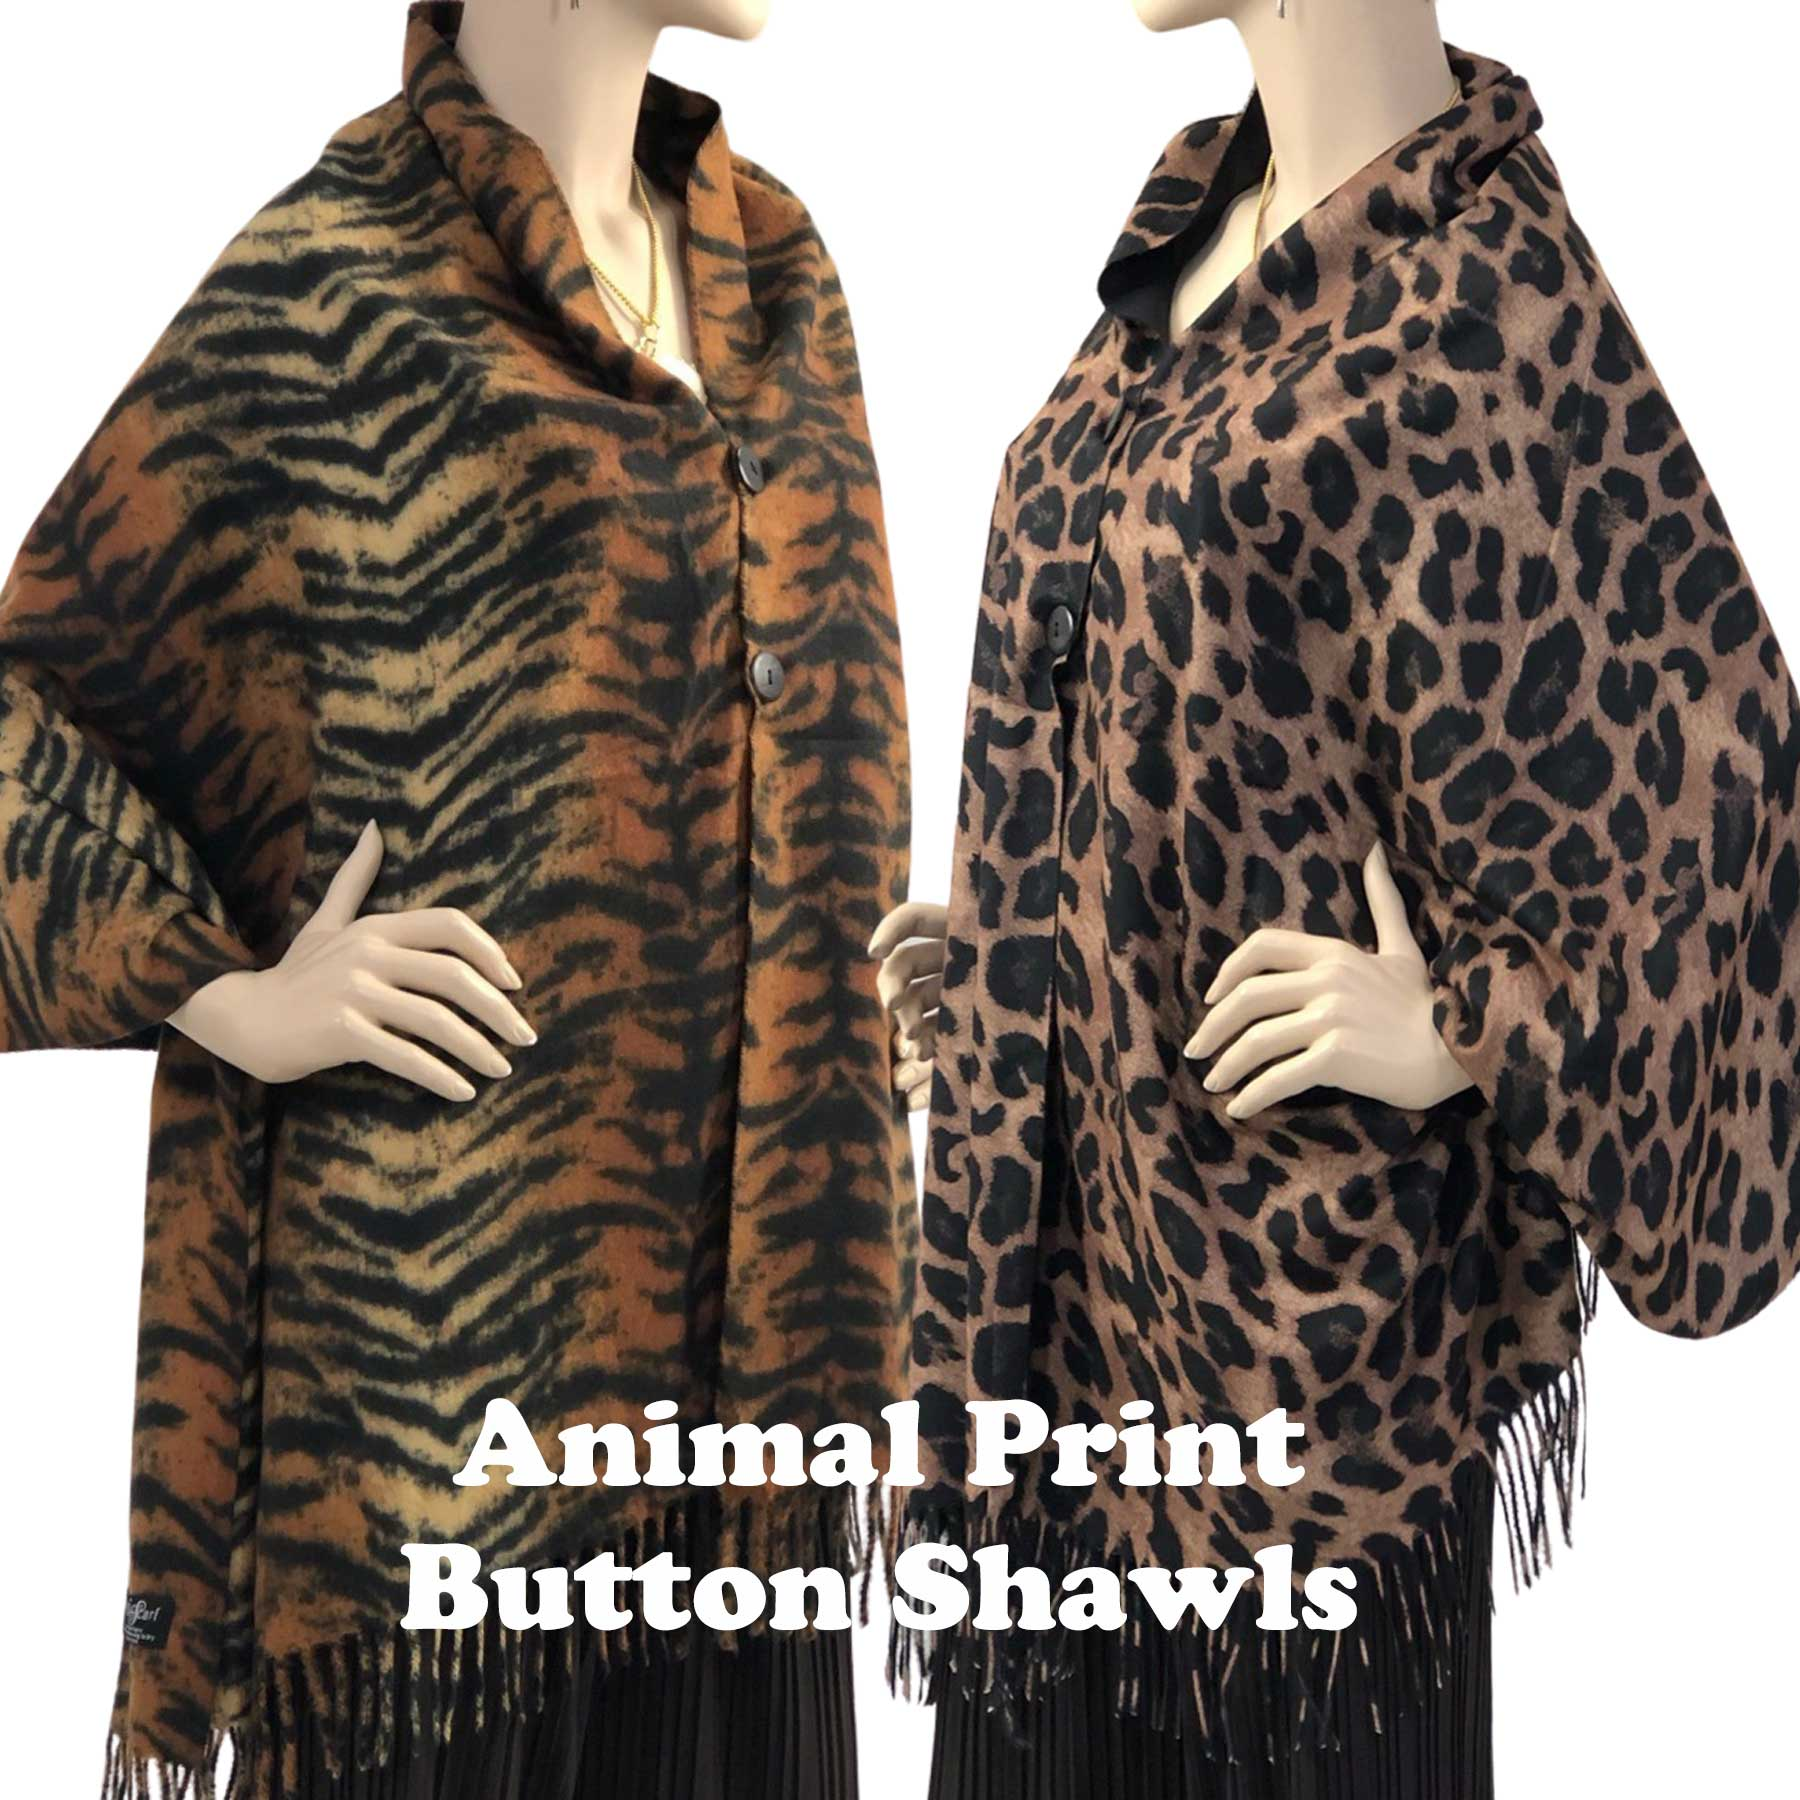 SUEDE CLOTH Animal Print Shawls with Buttons